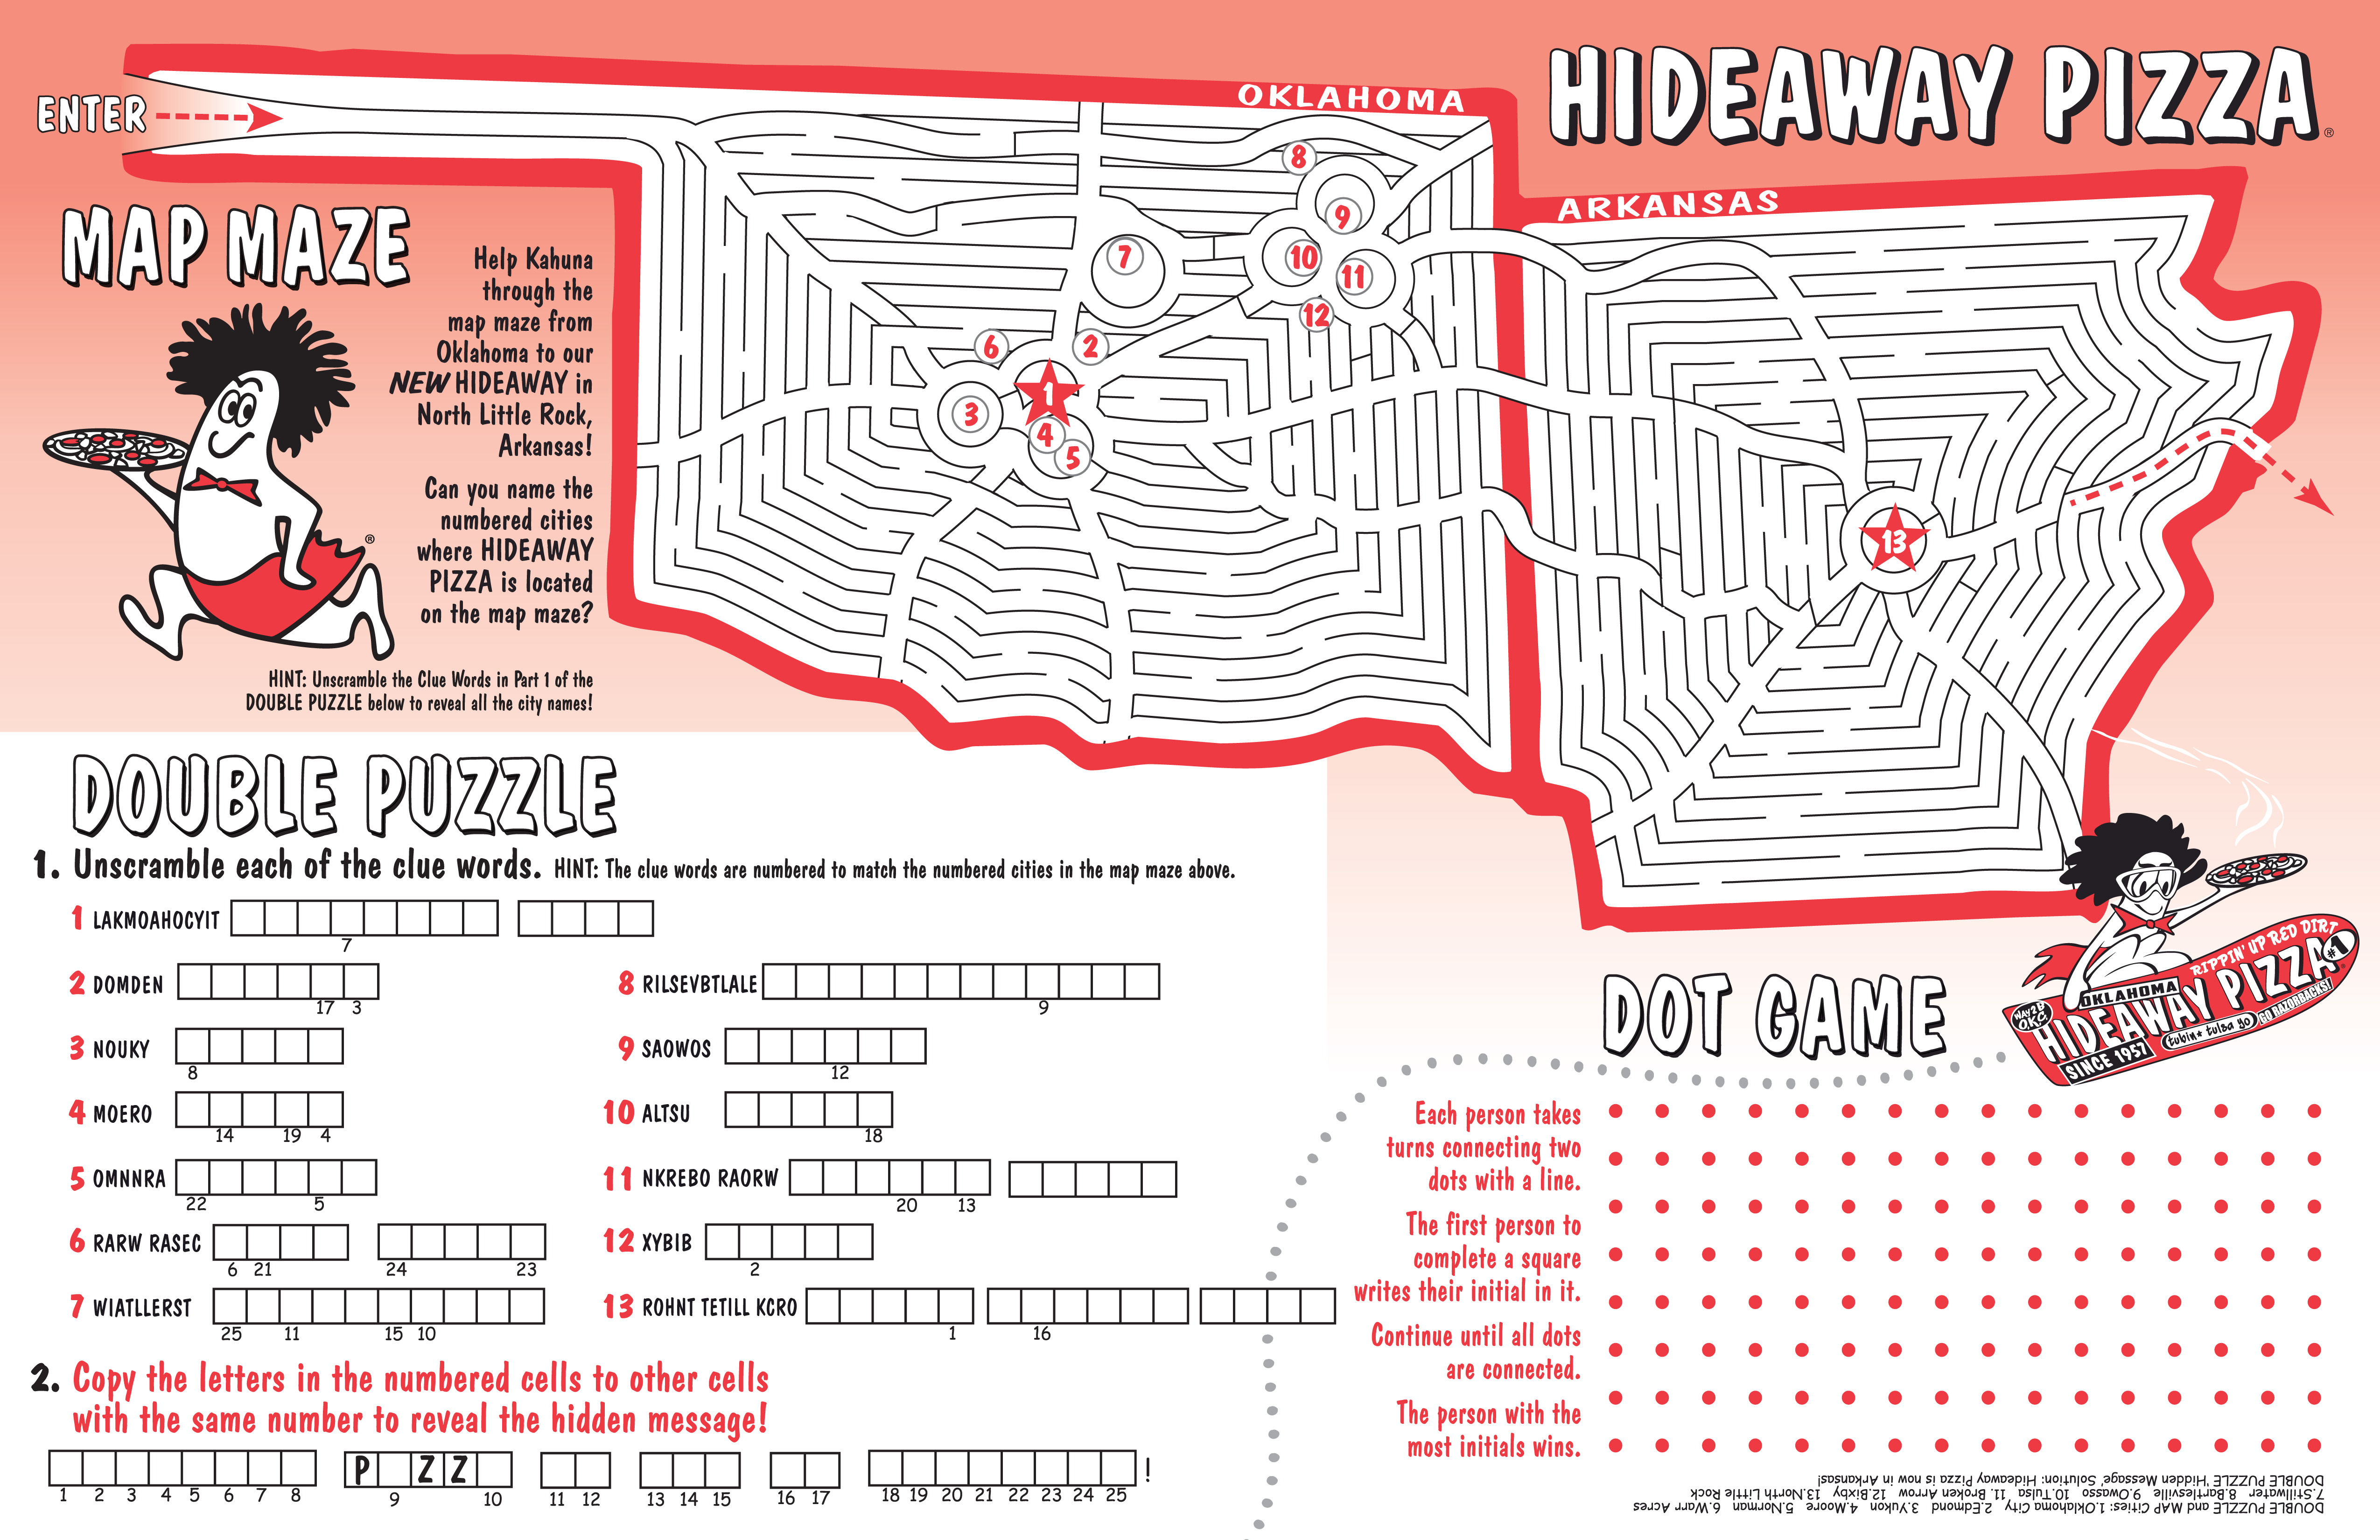 Children's Menu Design and Illustration; Game Design by Bob Paltrow Design - Hideaway Pizza, Tulsa OK